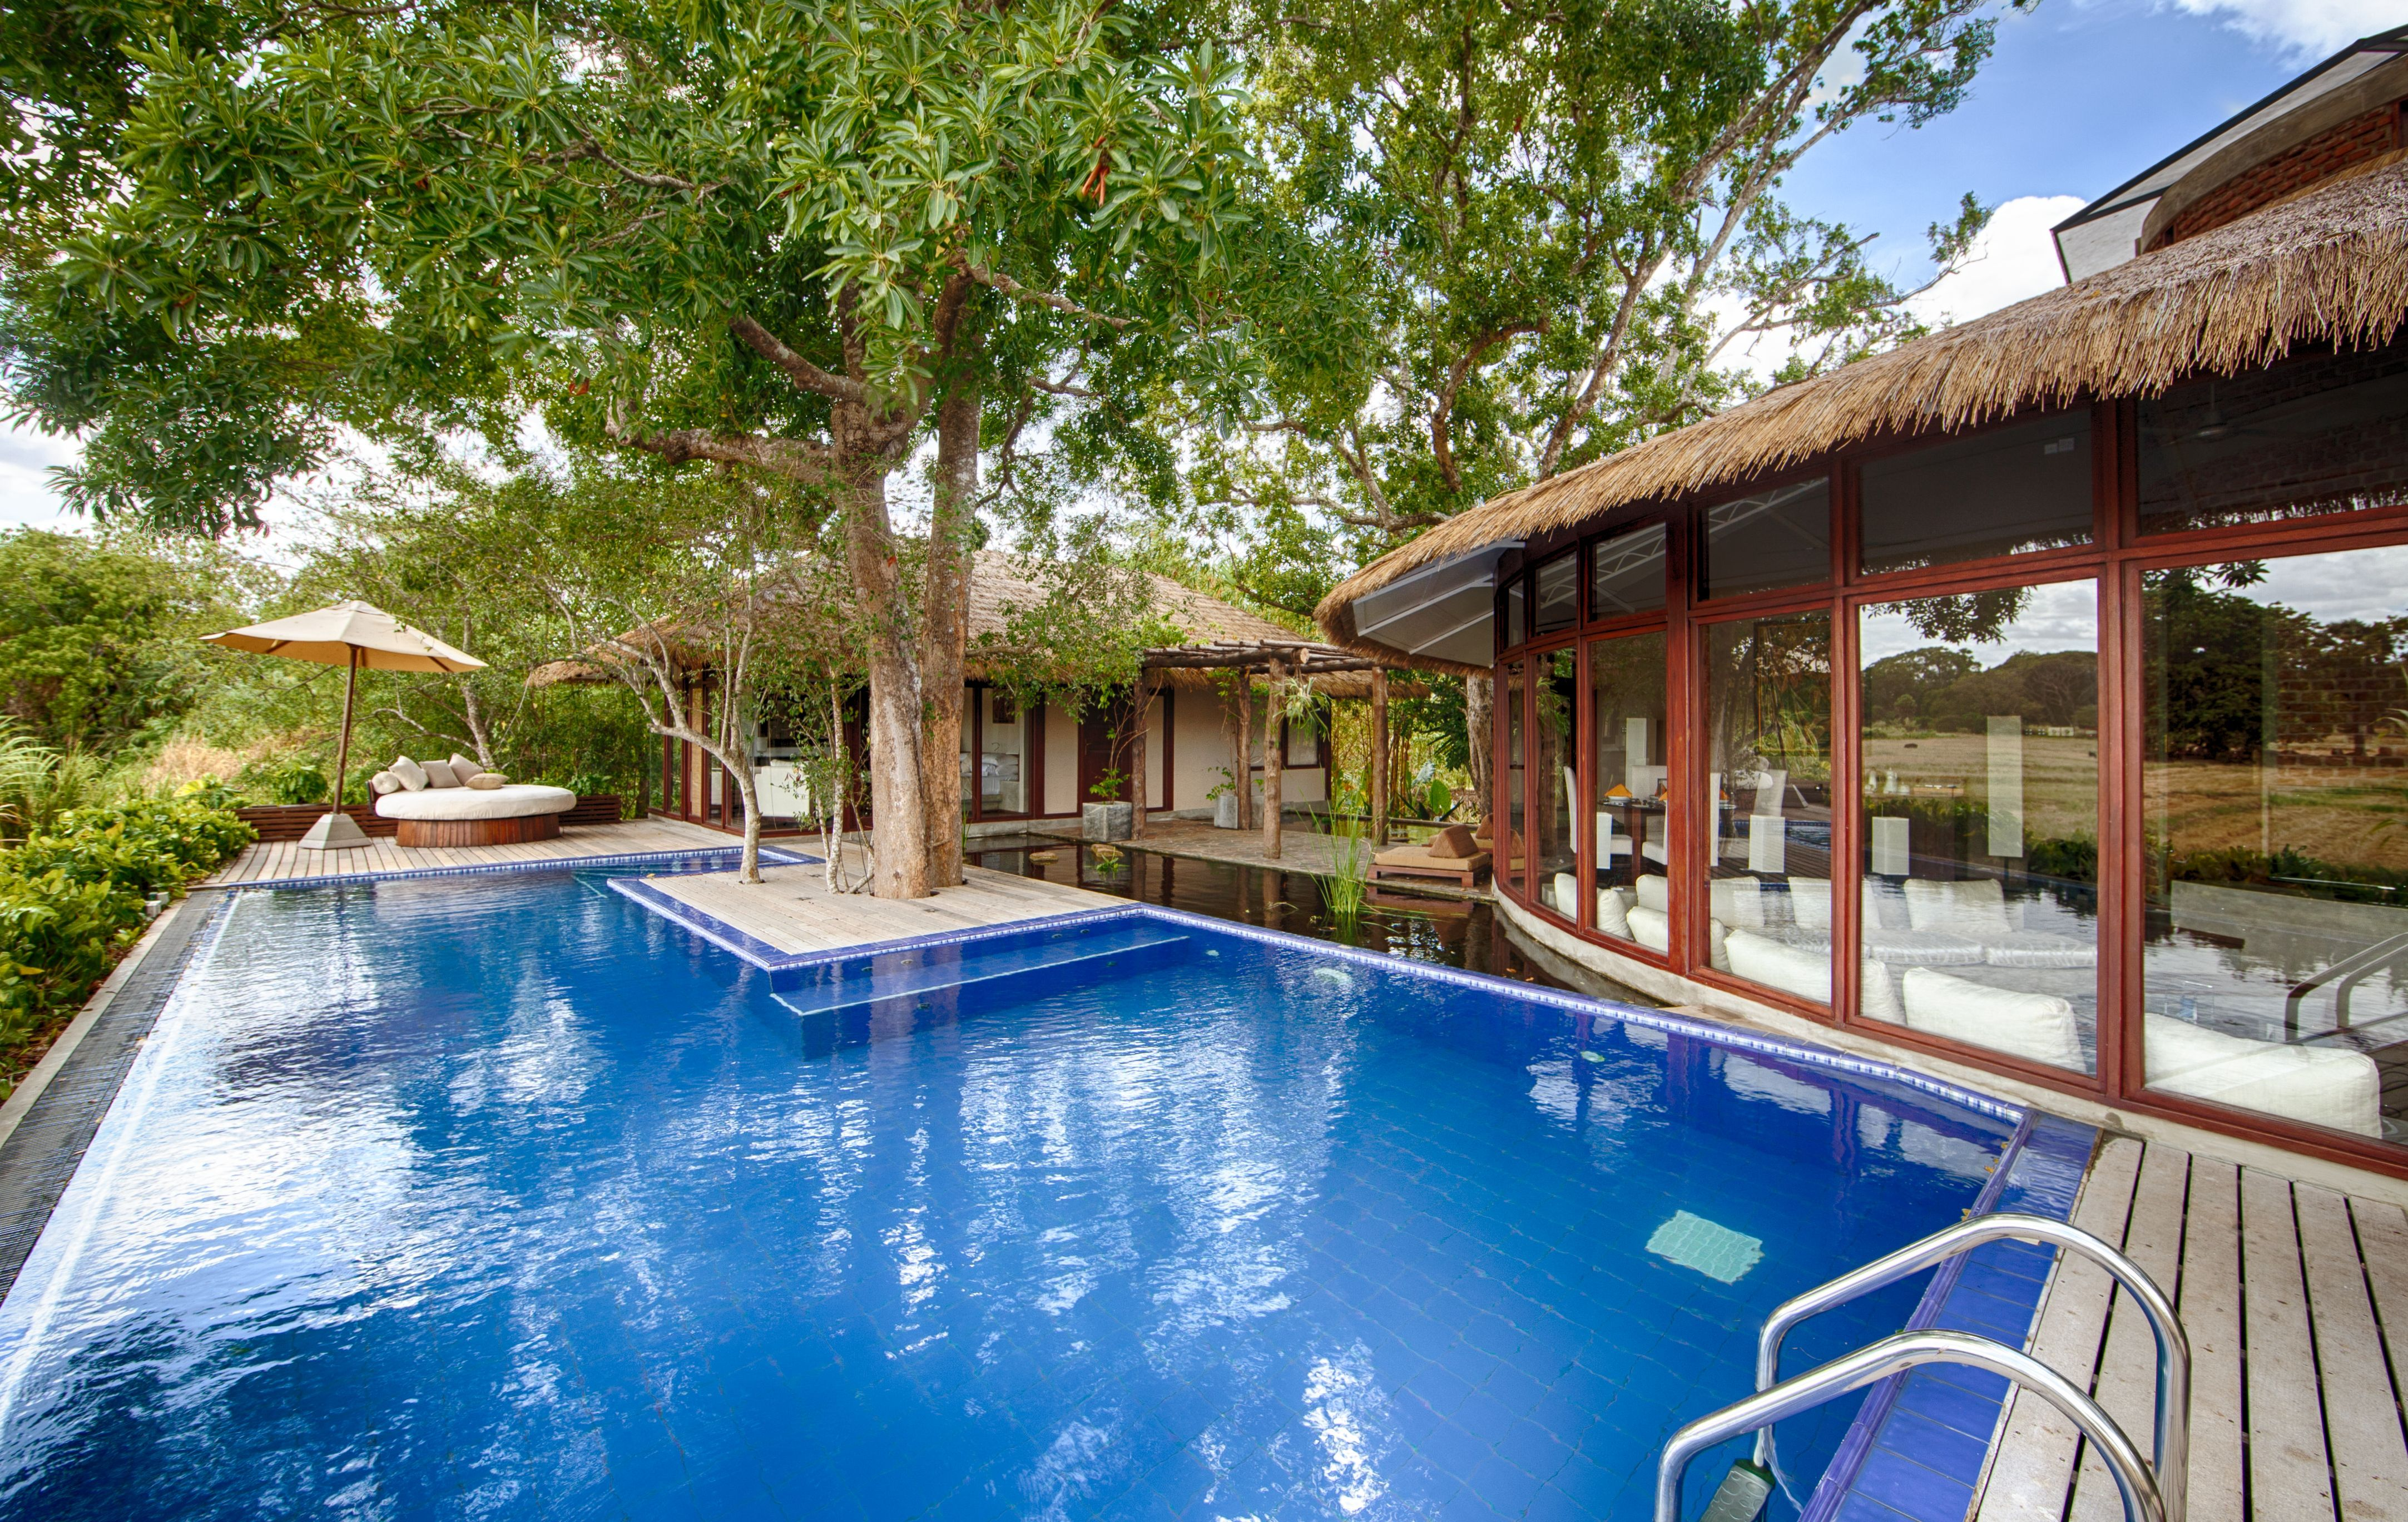 #TravelInspiration Ulagalla Resort in Anuradhapura, Sri Lanka... Pssst It's offering 50% off if you book 7 days in advance http://www.slh.com/hotels/ulagalla-resort/special-offers/